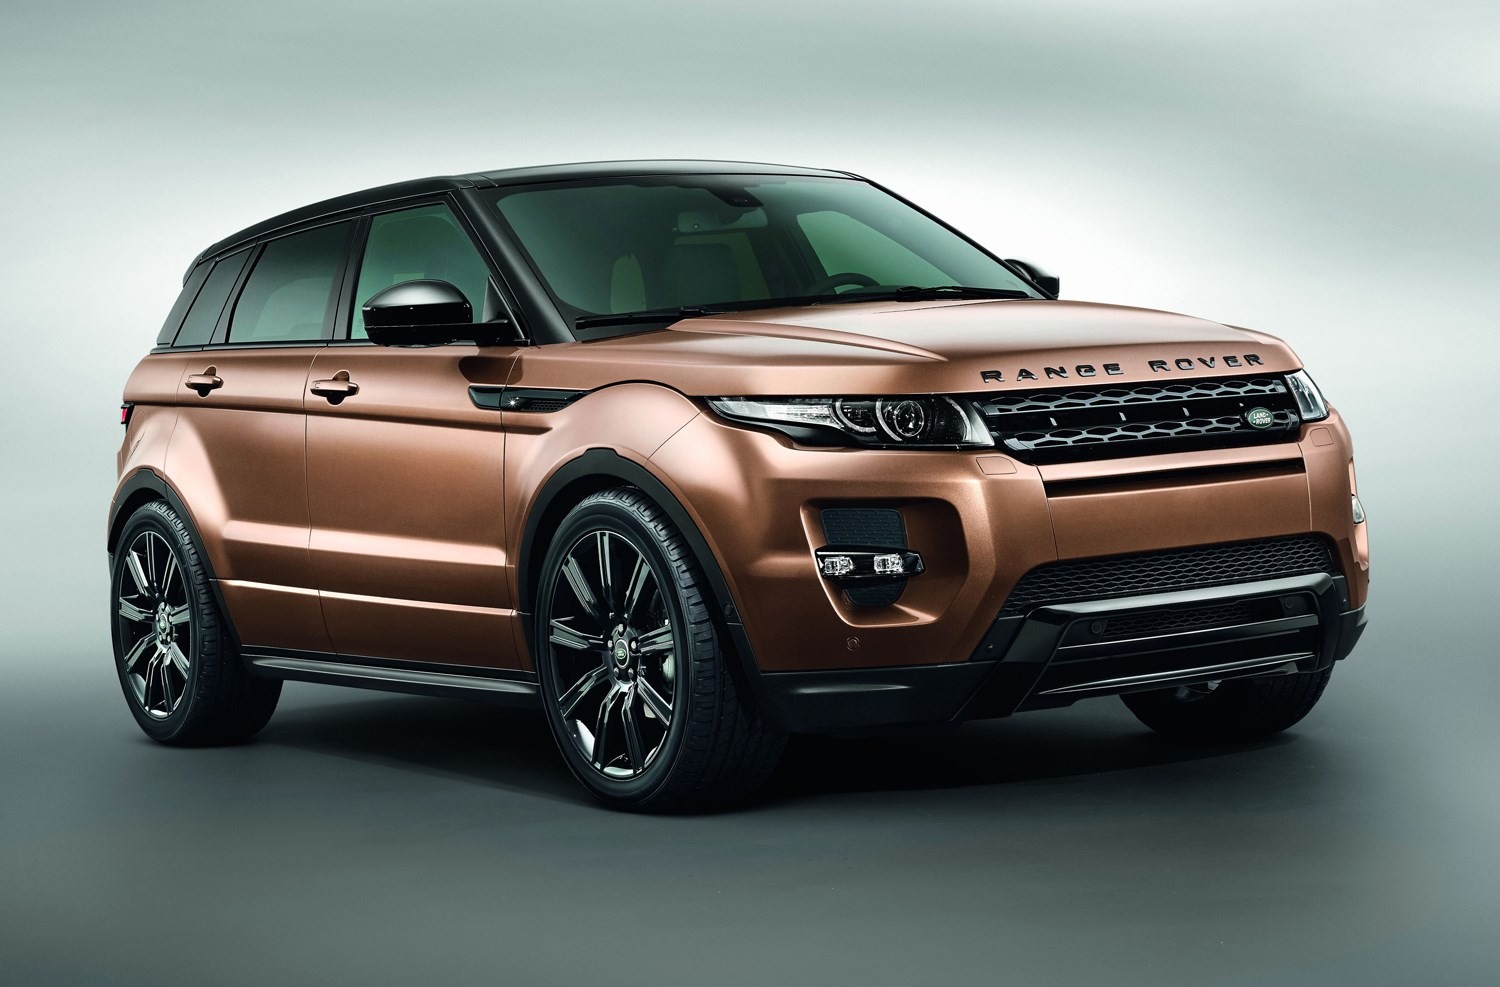 100 land rover evoque 2016 new range rover evoque. Black Bedroom Furniture Sets. Home Design Ideas